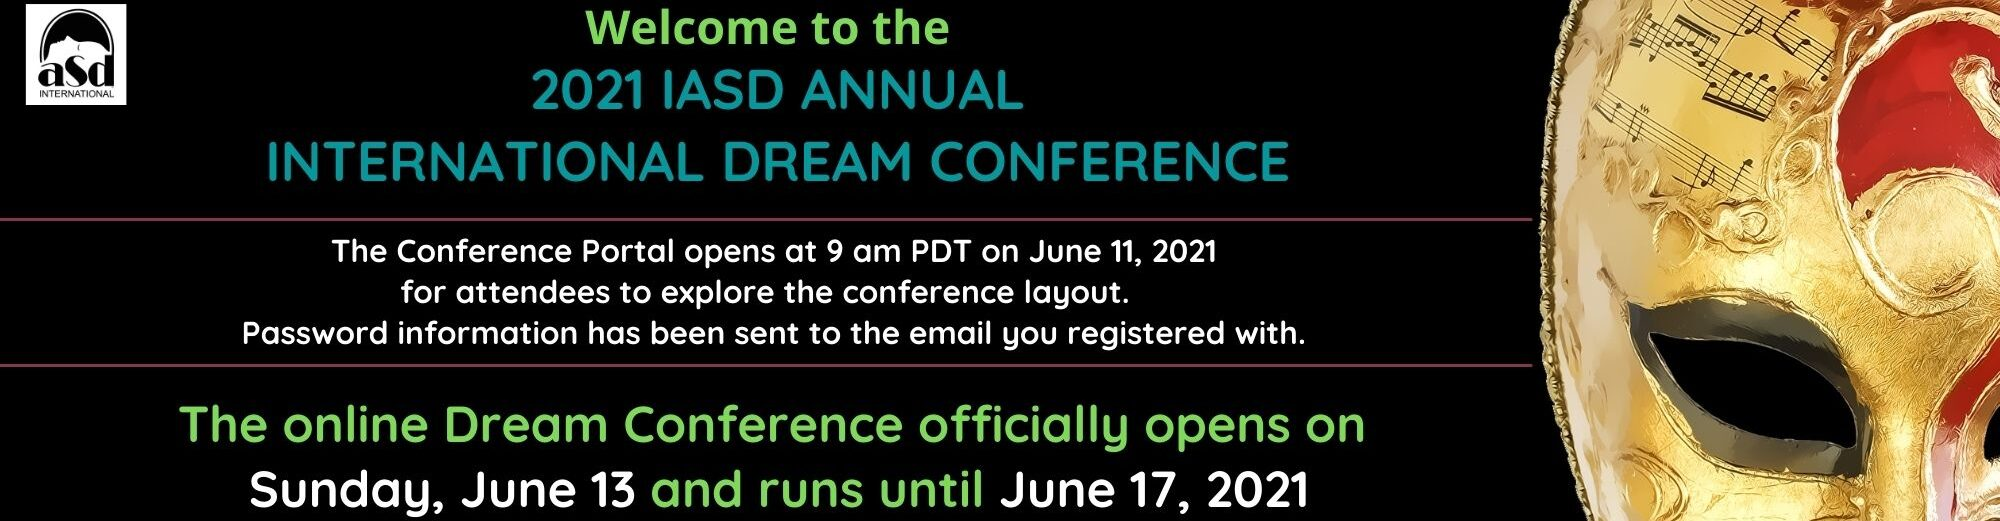 Welcome to the 2021 Virtual Dream Conference